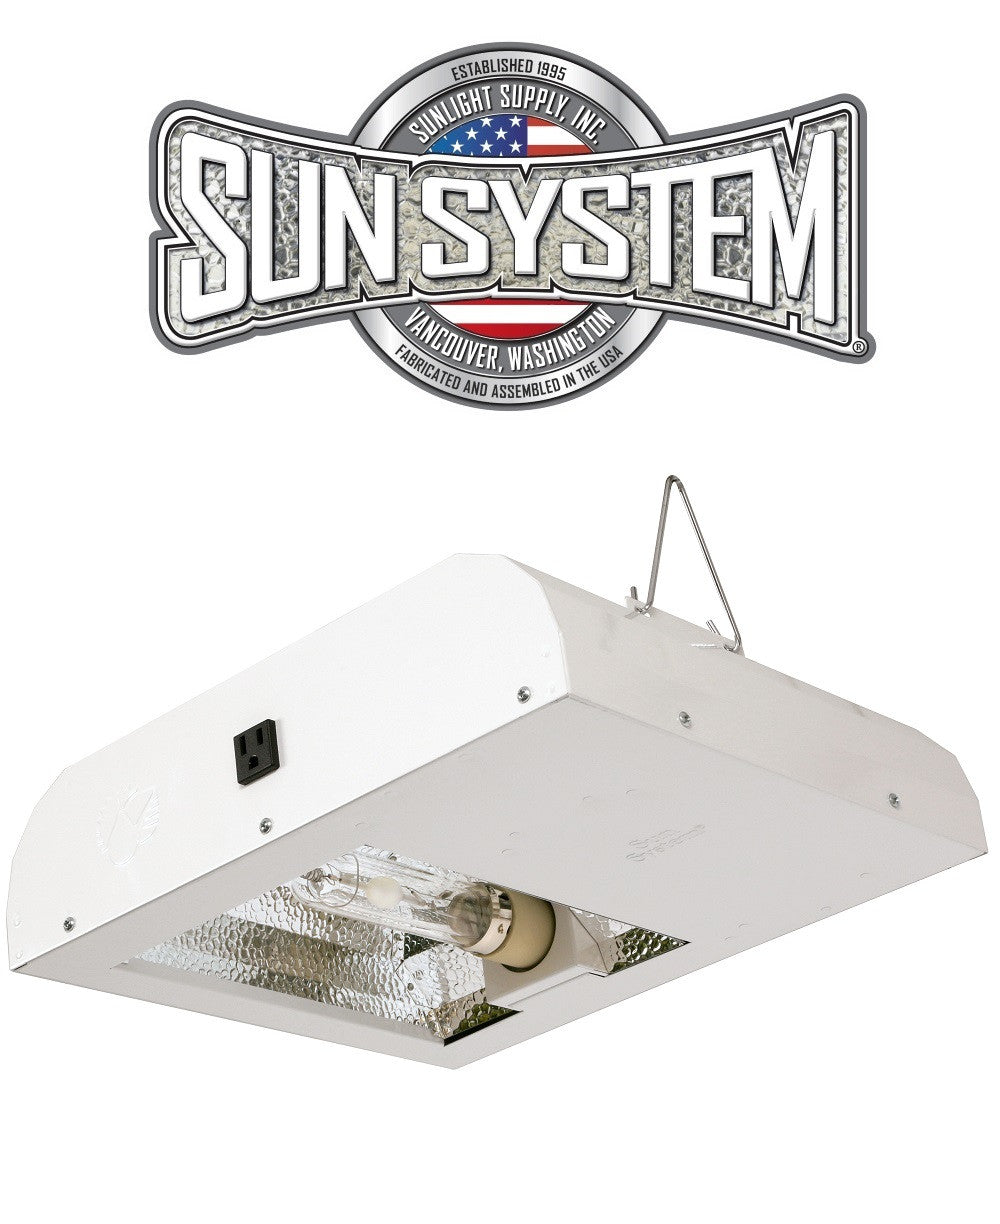 Sun System Diamond LEC 315W CMH Ceramic Metal Halide Light Fixture 277v